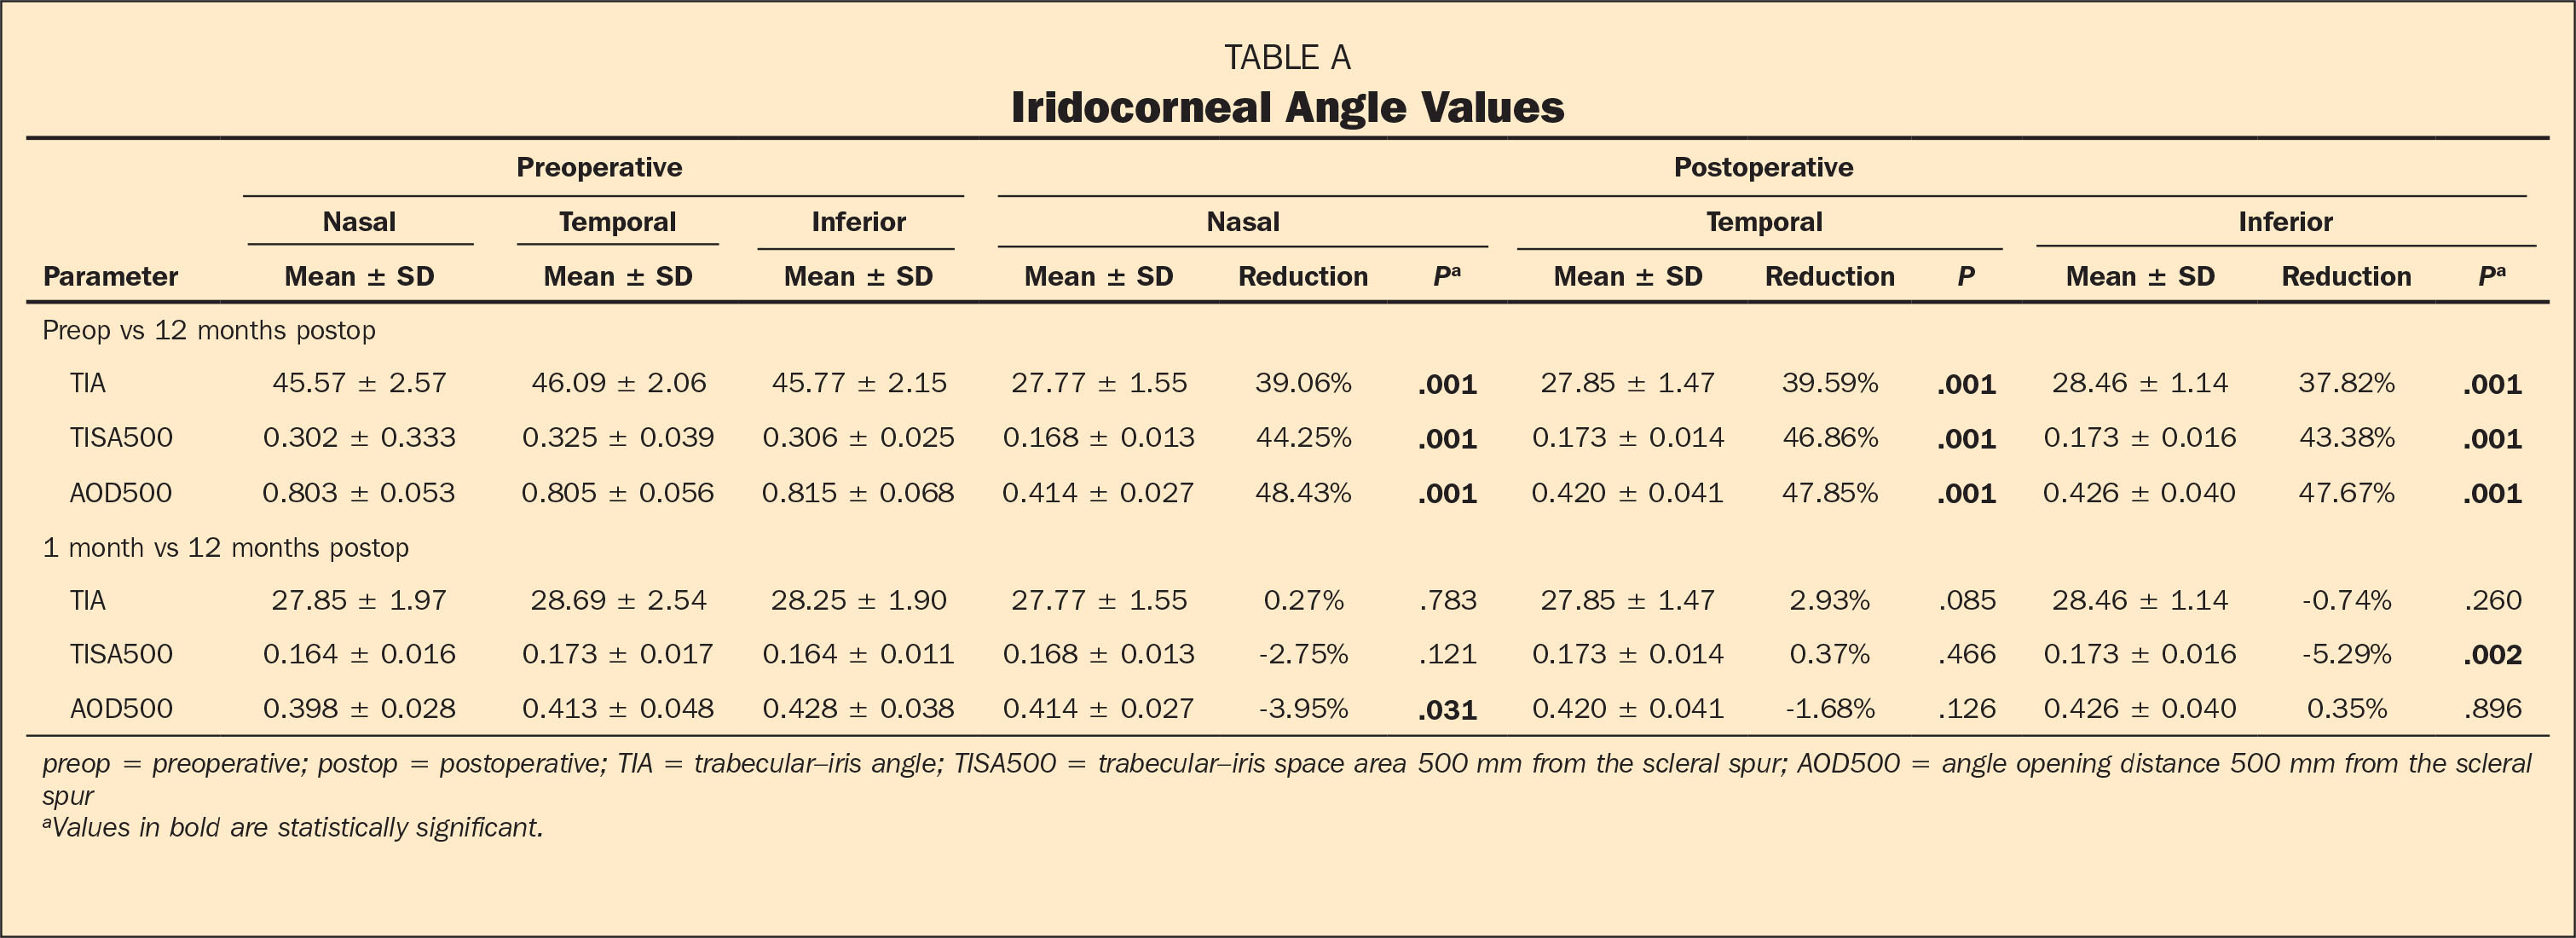 Iridocorneal Angle Values